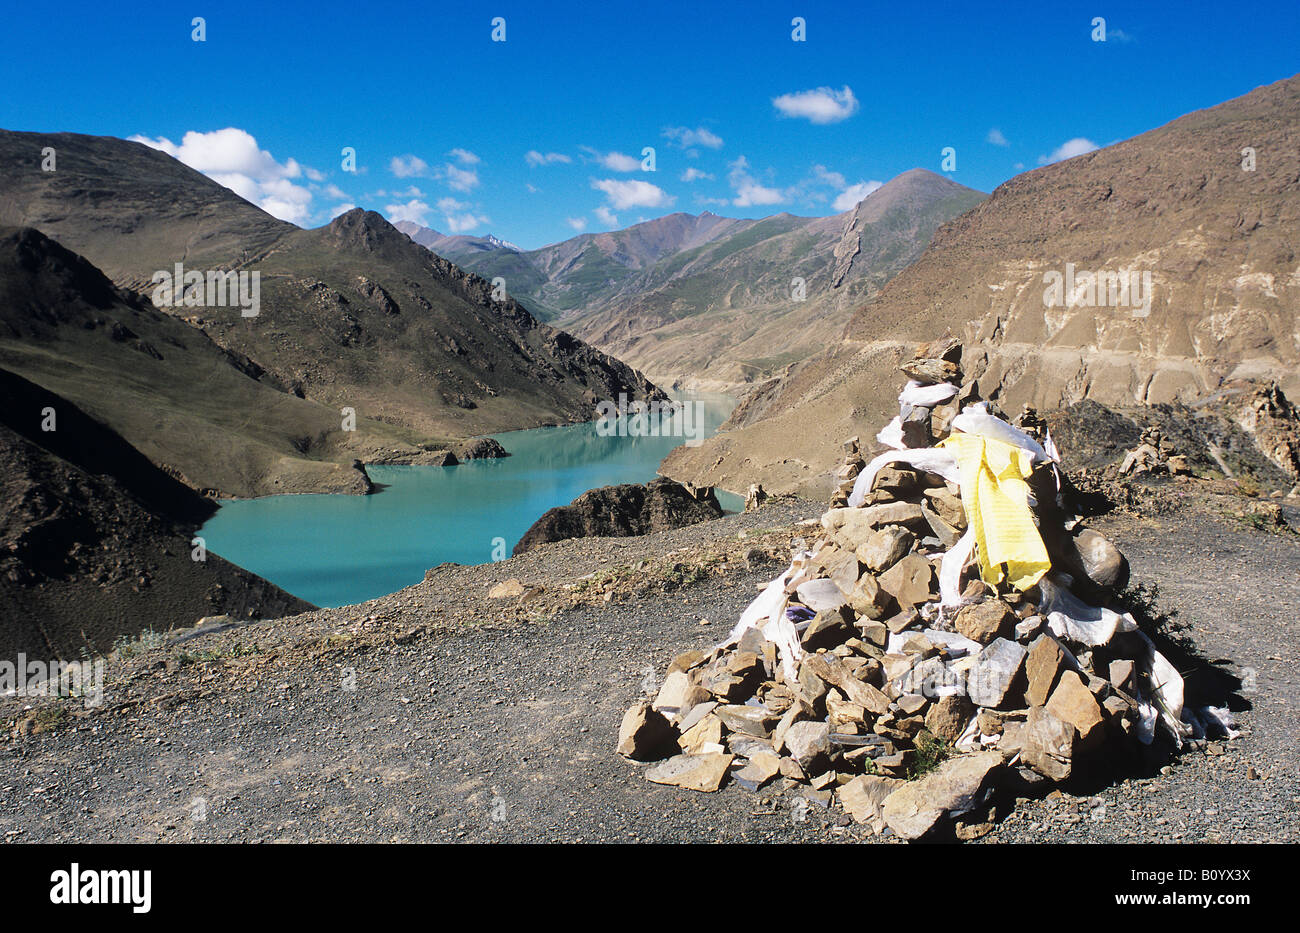 Reservoir at Simelha Pass, Gyantse, Tibet, China - Stock Image